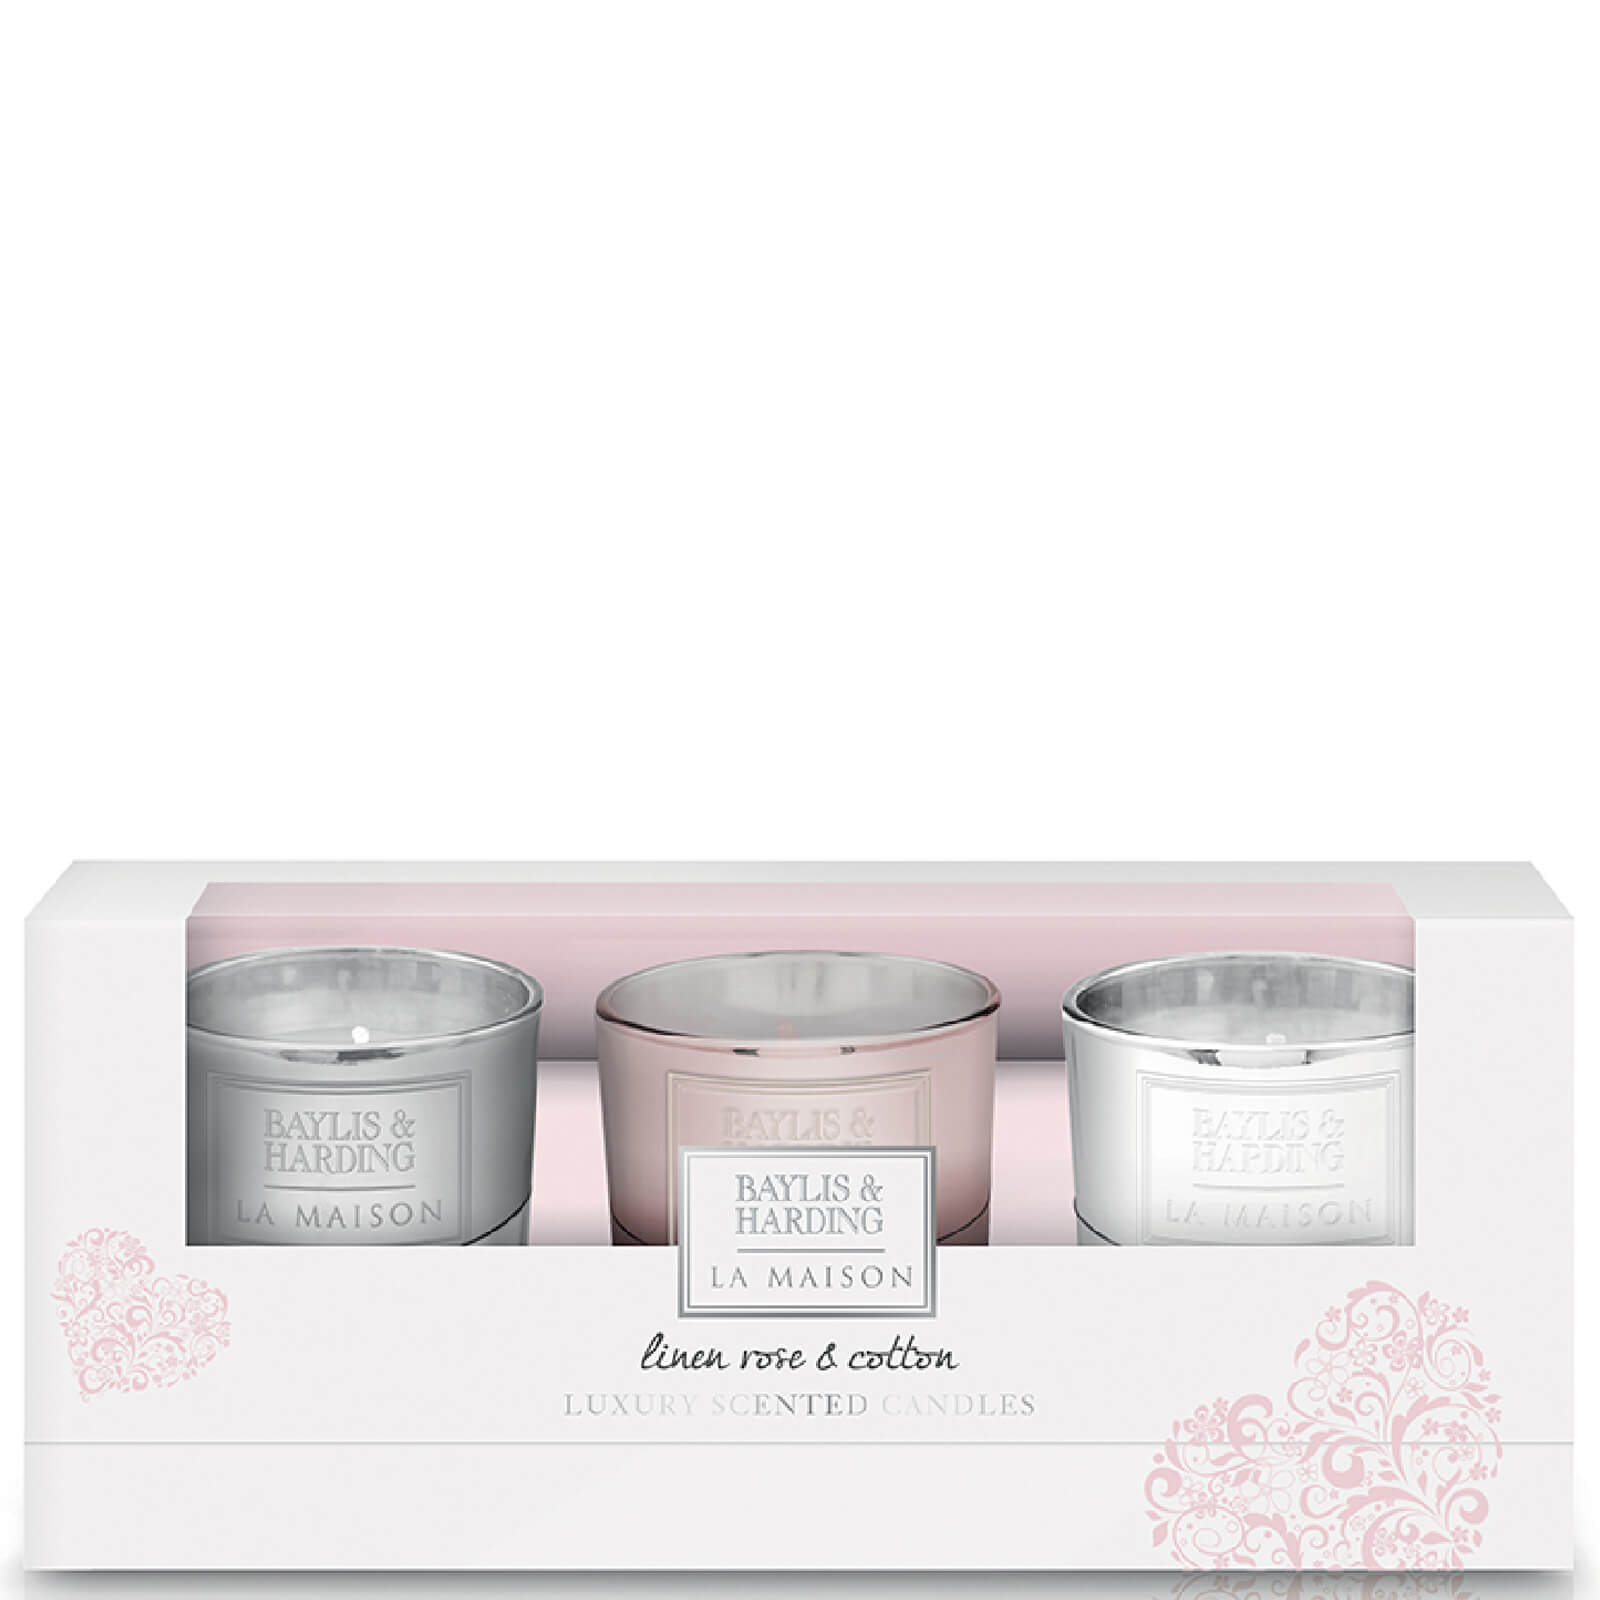 Baylis & Harding La Maison Linen Rose & Cotton - 3 Candle Set